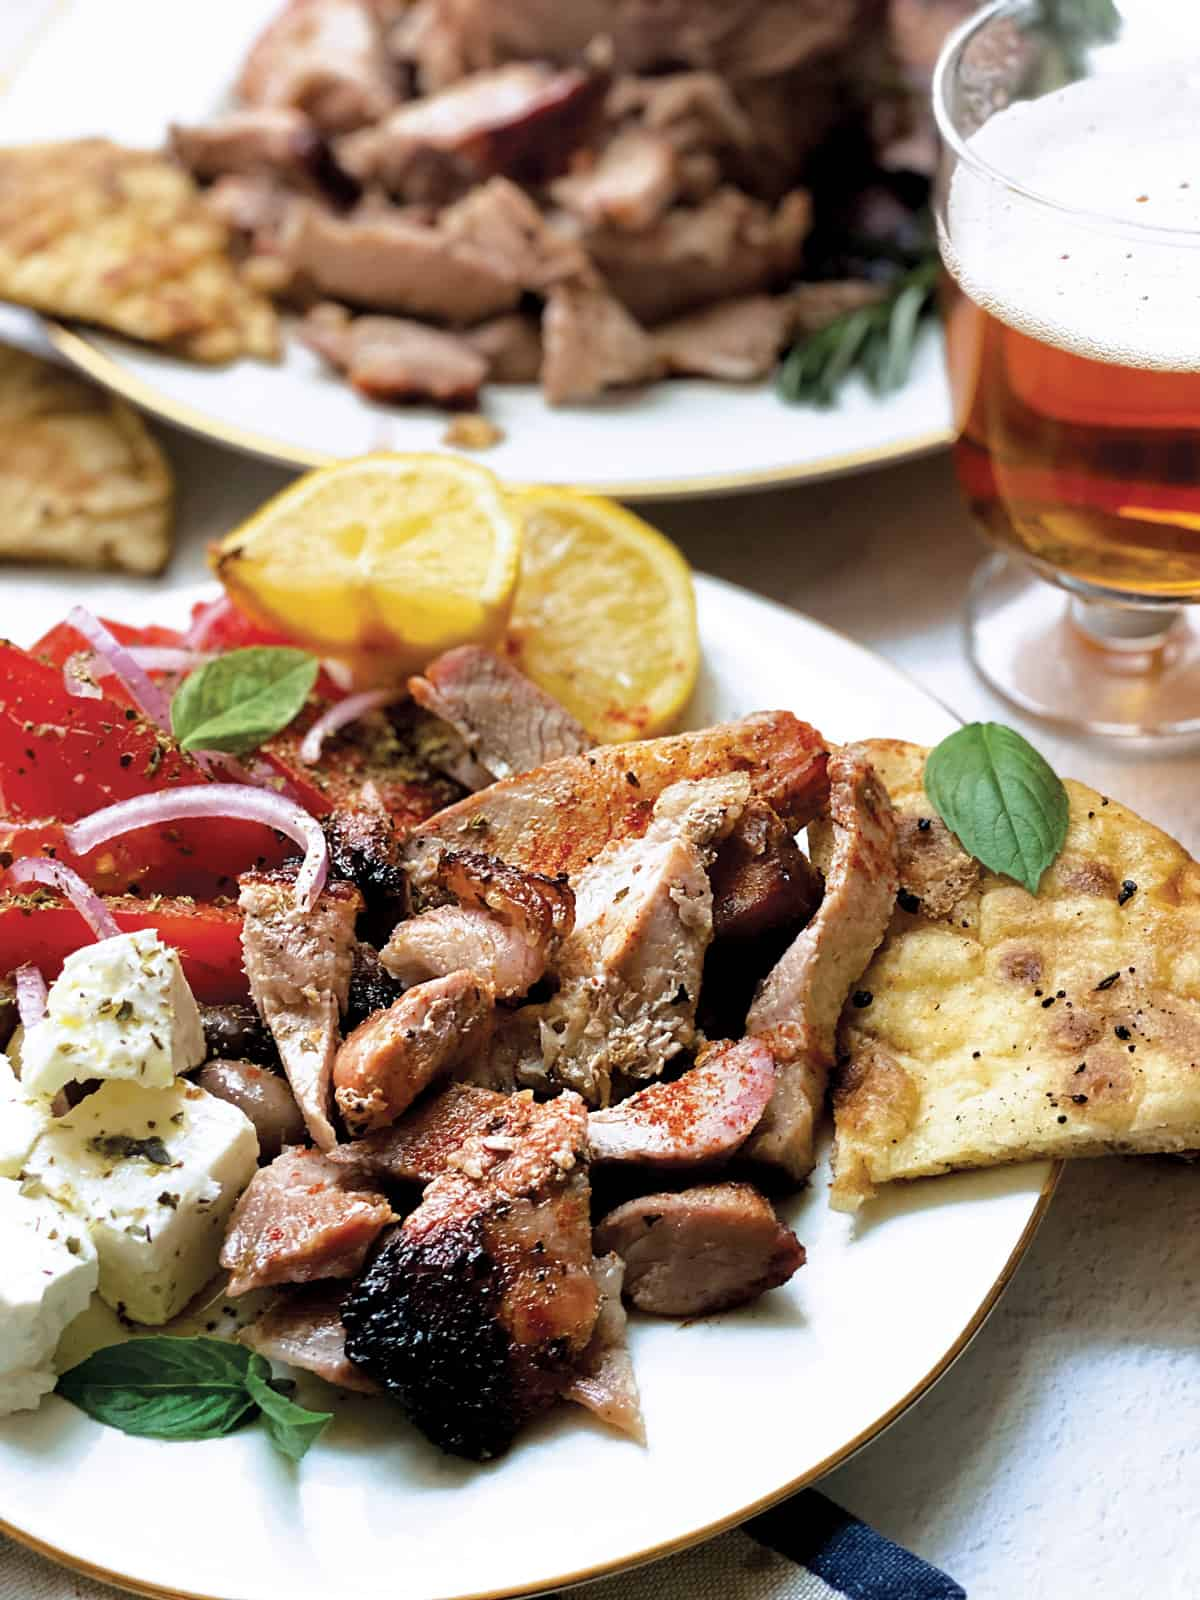 A plate with sliced tomatoes and onions, olives, feta cheese cubes, pieces of greek gyro lemon wedges and pitas.